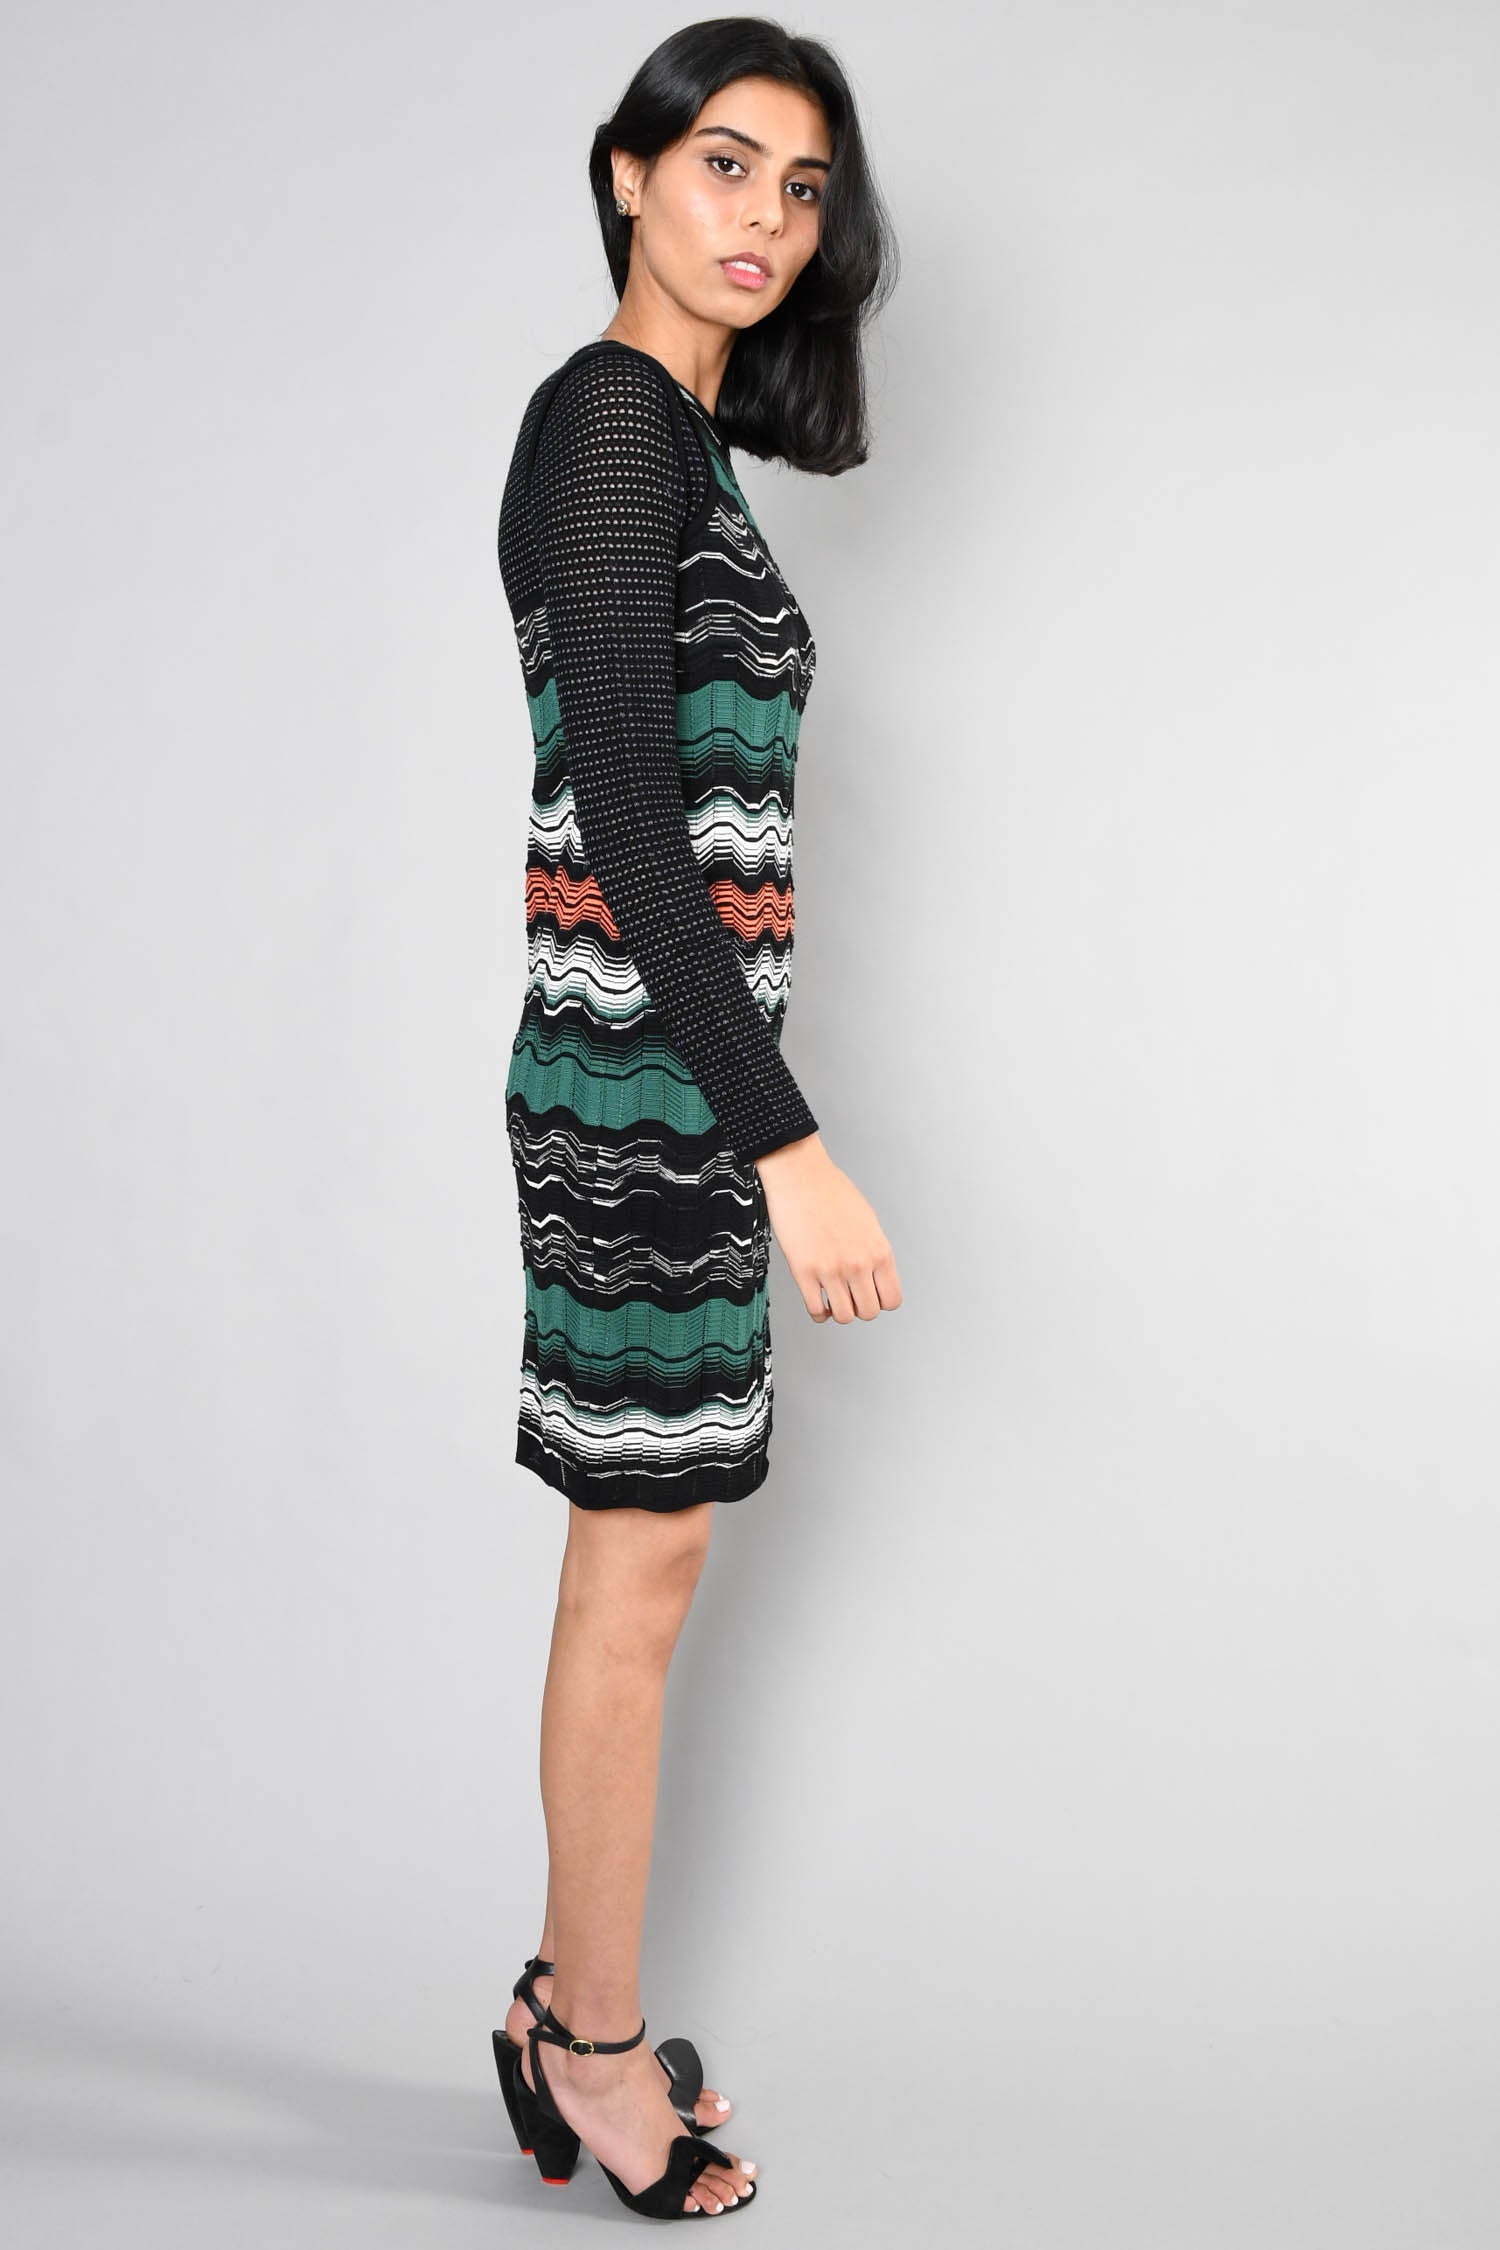 M Missoni Green/Black Printed Round Neck Sweater Dress Size 6 US